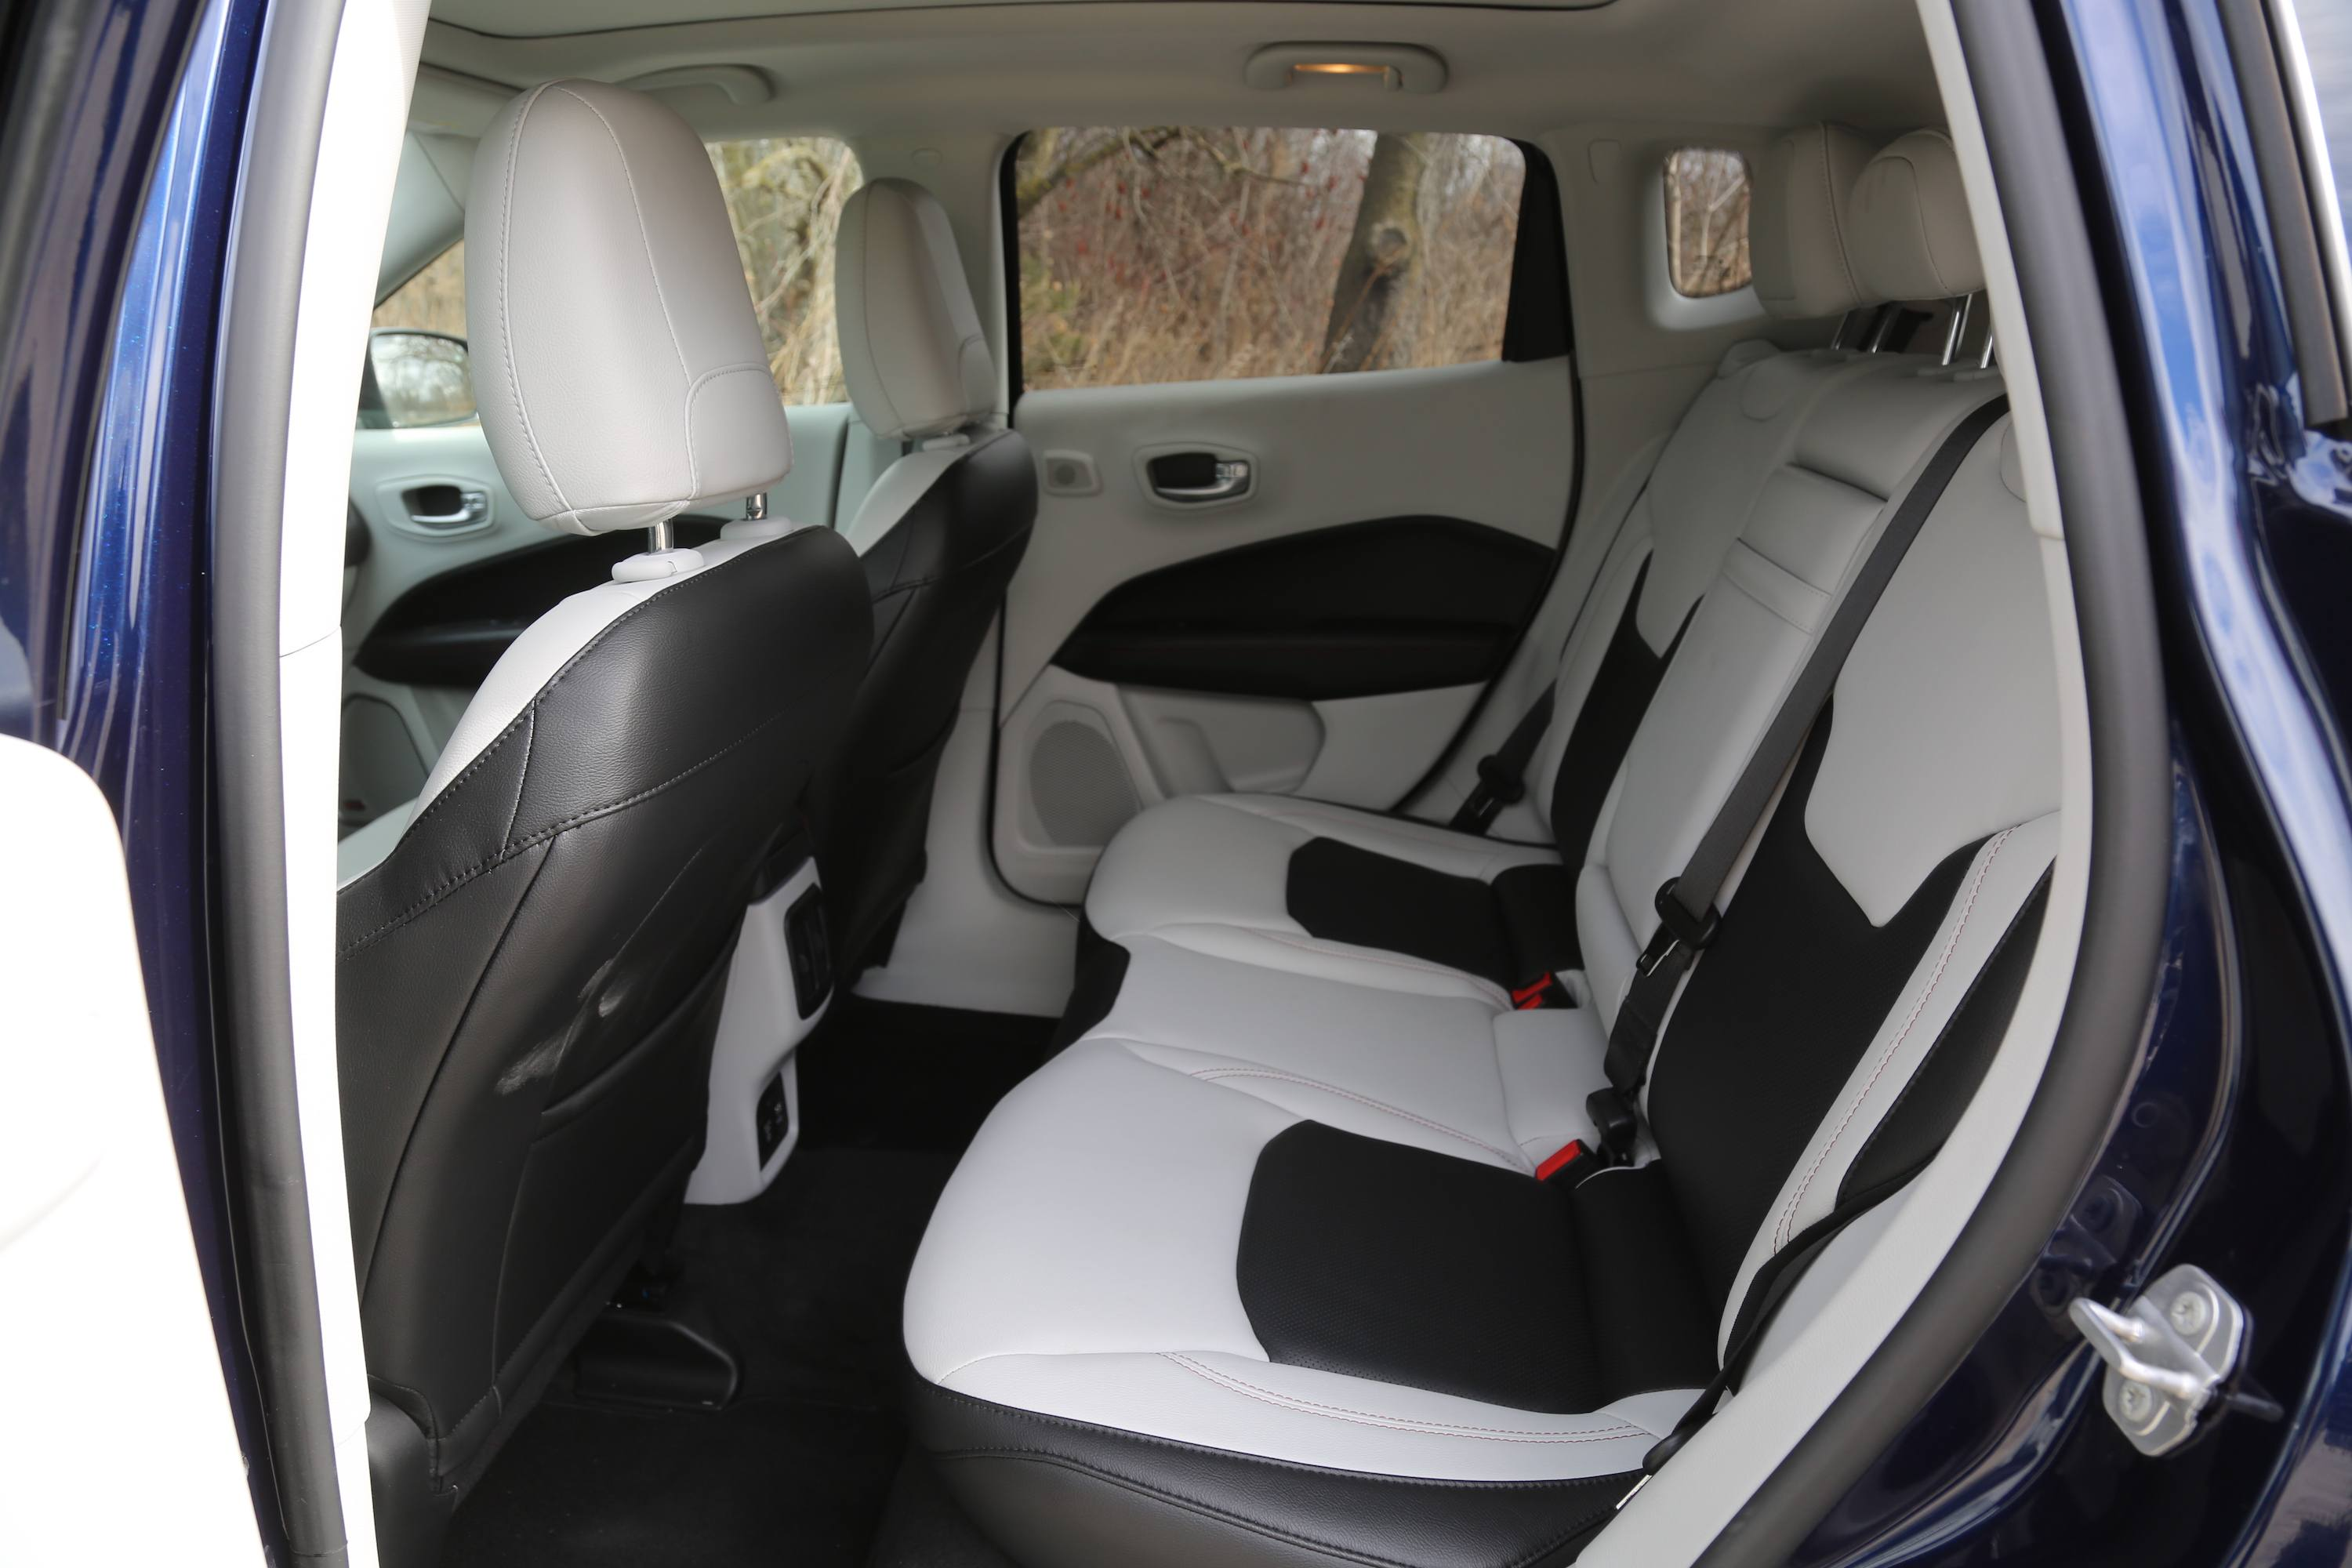 2018 Jeep Compass Review Front Seat Cargo Cover Additionally The Rear Seats Are A Bit Tight And Im Not Thrilled With Space Either Up Or Down Its Shallow It Also Has Pretty High